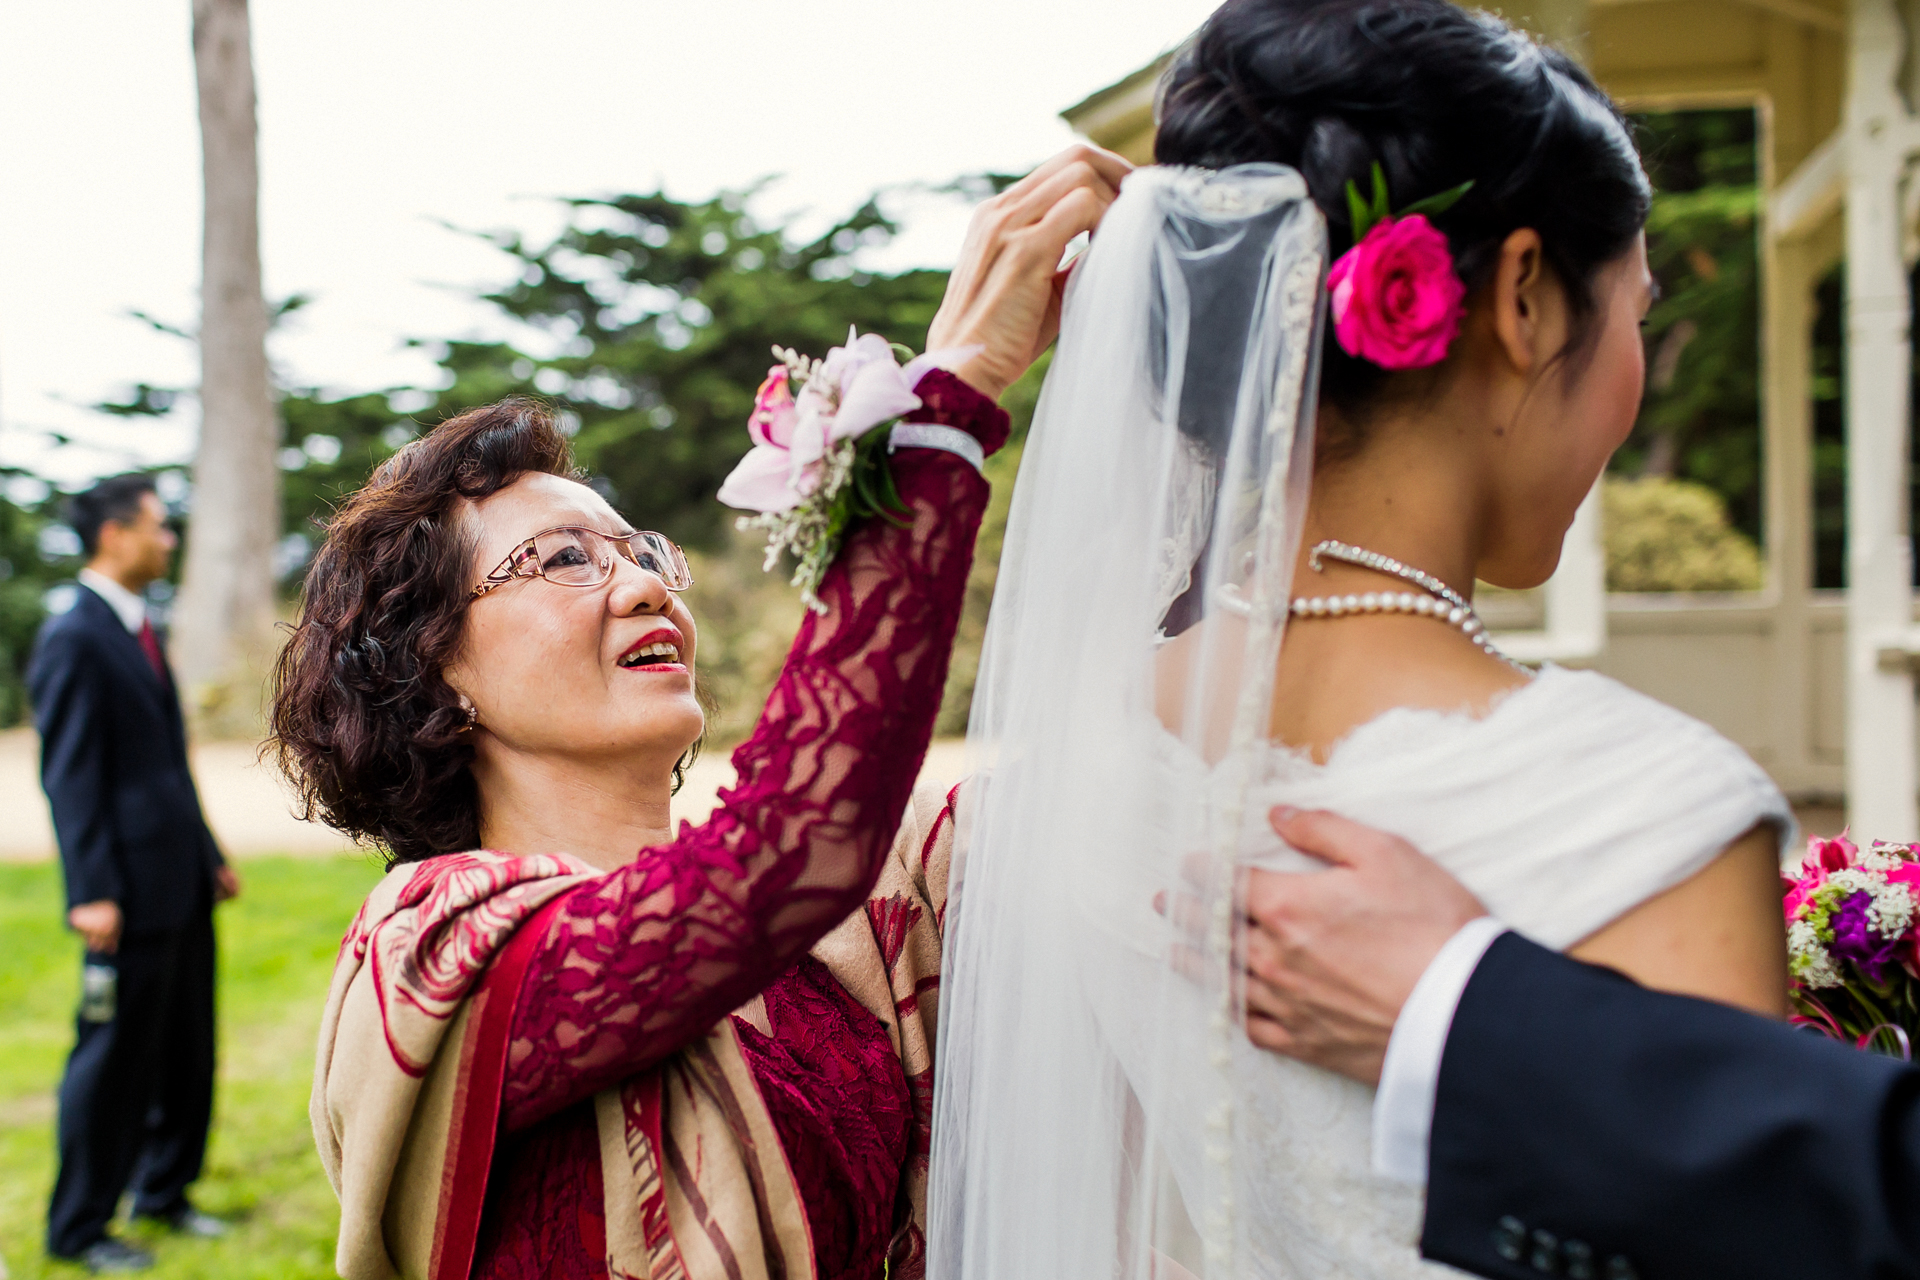 SF, CA Elopement Bridal Image | The mother of the bride helps fix her daughter's veil